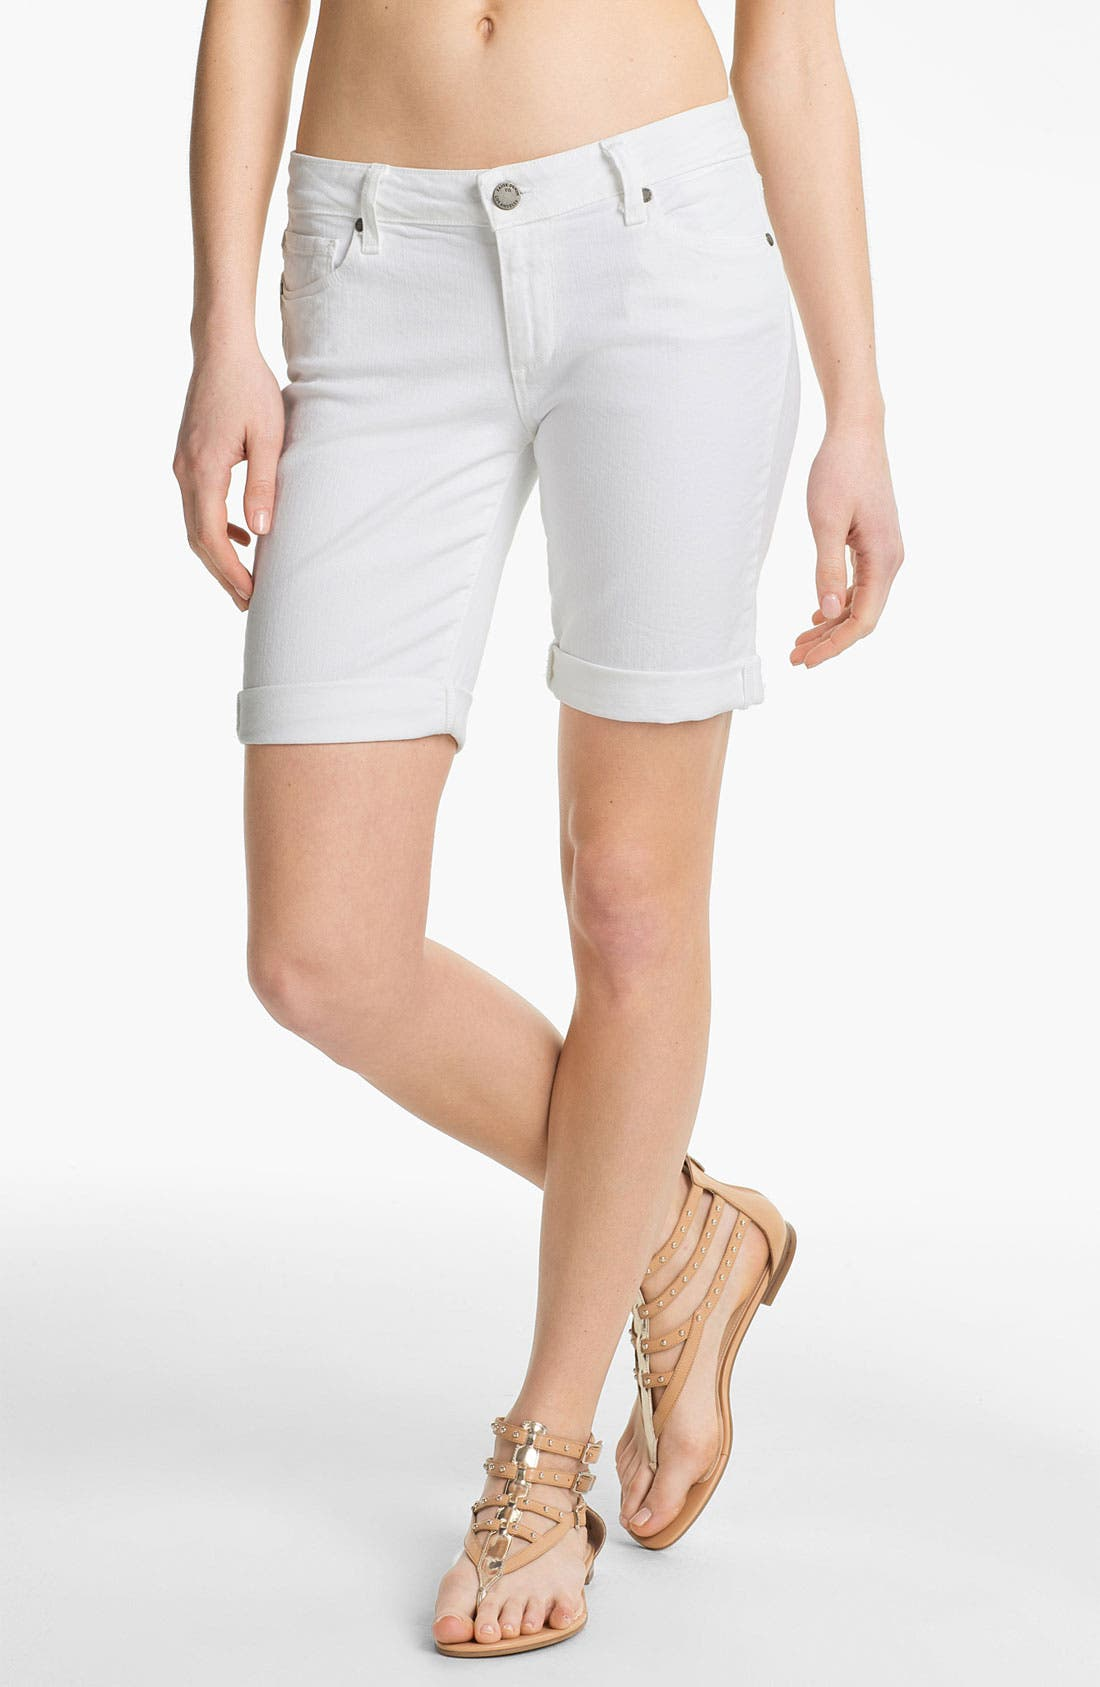 Alternate Image 1 Selected - Paige Denim 'Jax' Stretch Denim Bermuda Shorts (Optic White)